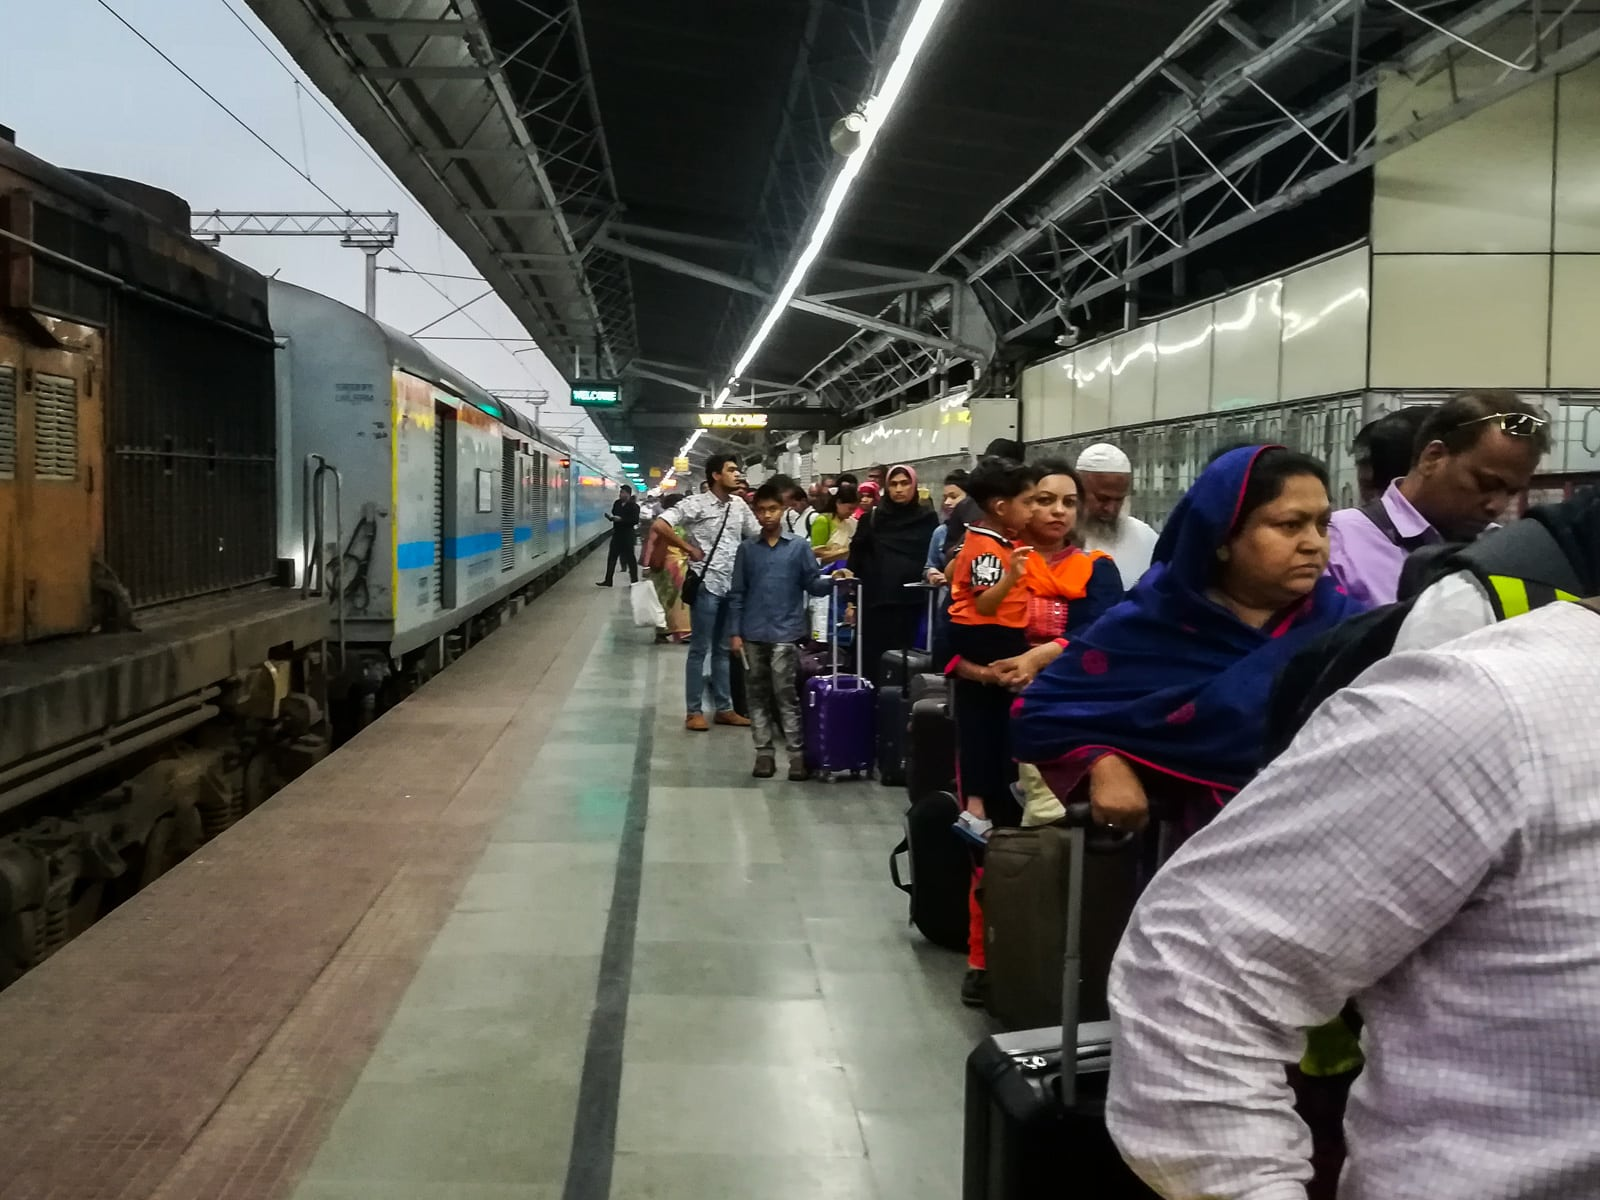 How to take the train from Dhaka to Kolkata - Immigration line at Kolkata Chitpur railway station - Lost With Purpose travel blog